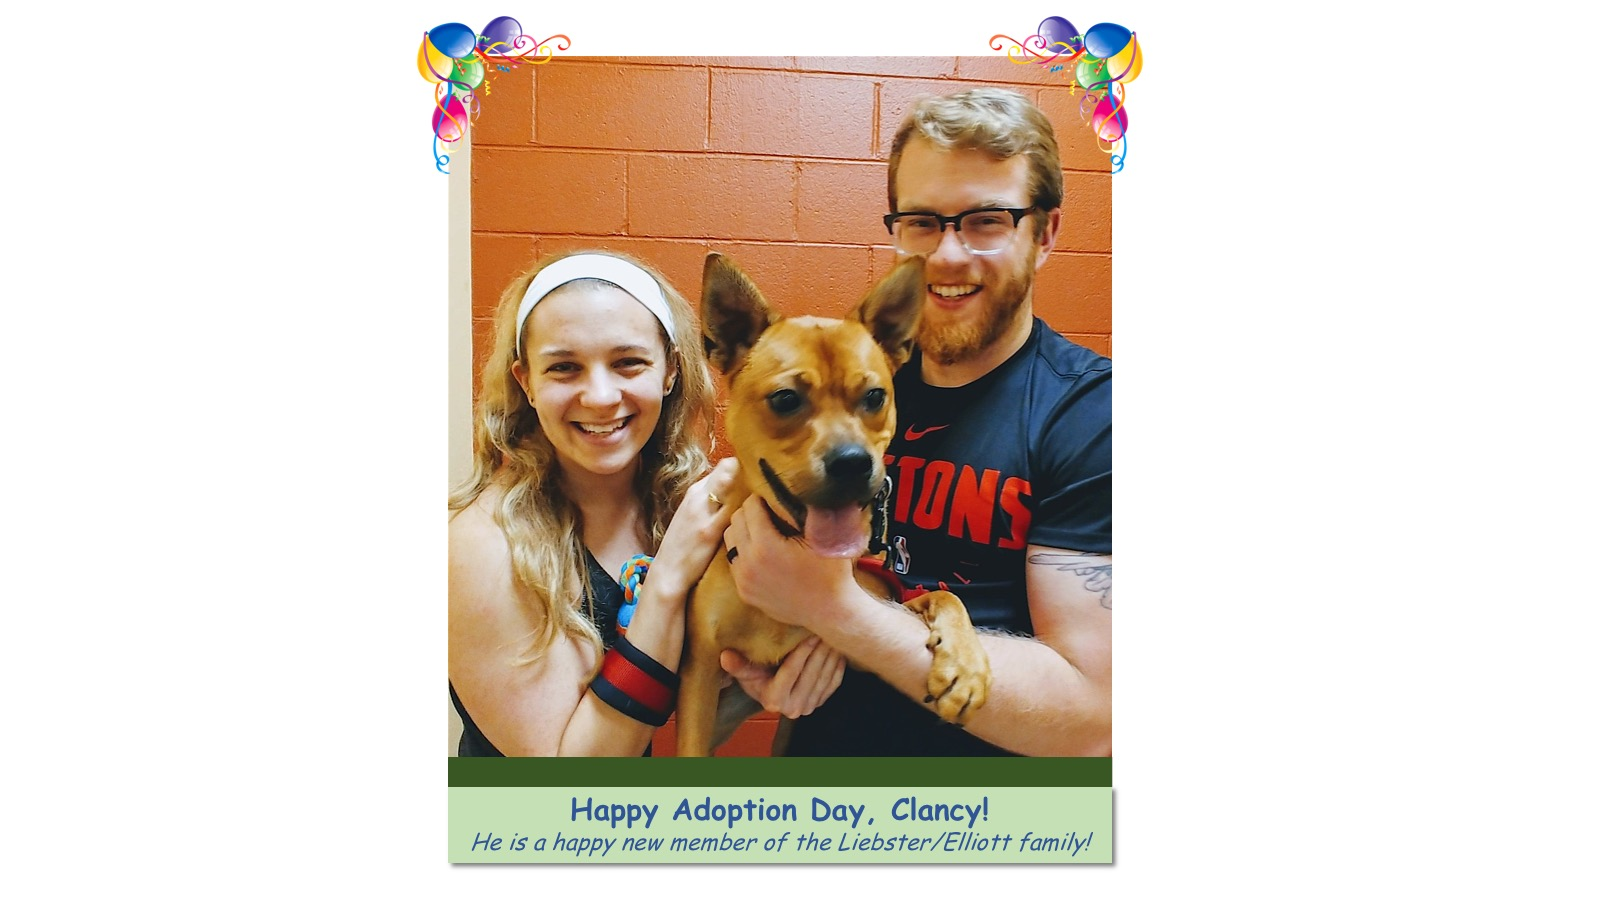 Clancy_Adoption_Photo_2018.jpg